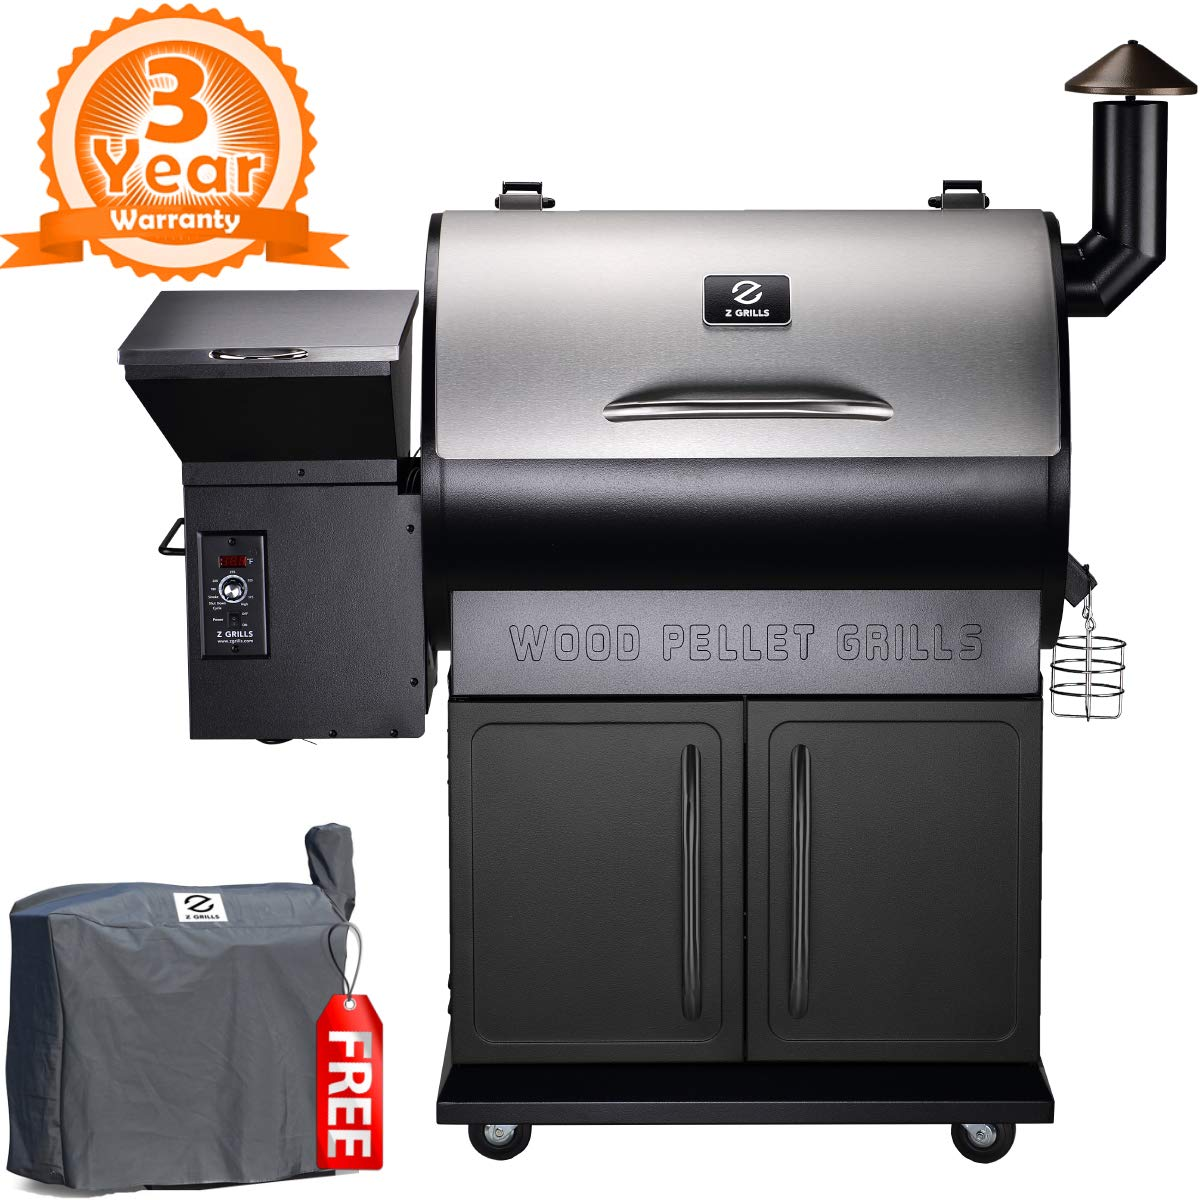 Z Grills ZPG-700E 2019 New Model Wood Pellet Grill & Smoker, 8 in 1 BBQ Grill Auto Temperature Control 700 sq inch Cooking Area Silver & Black Cover Included by Z GRILLS